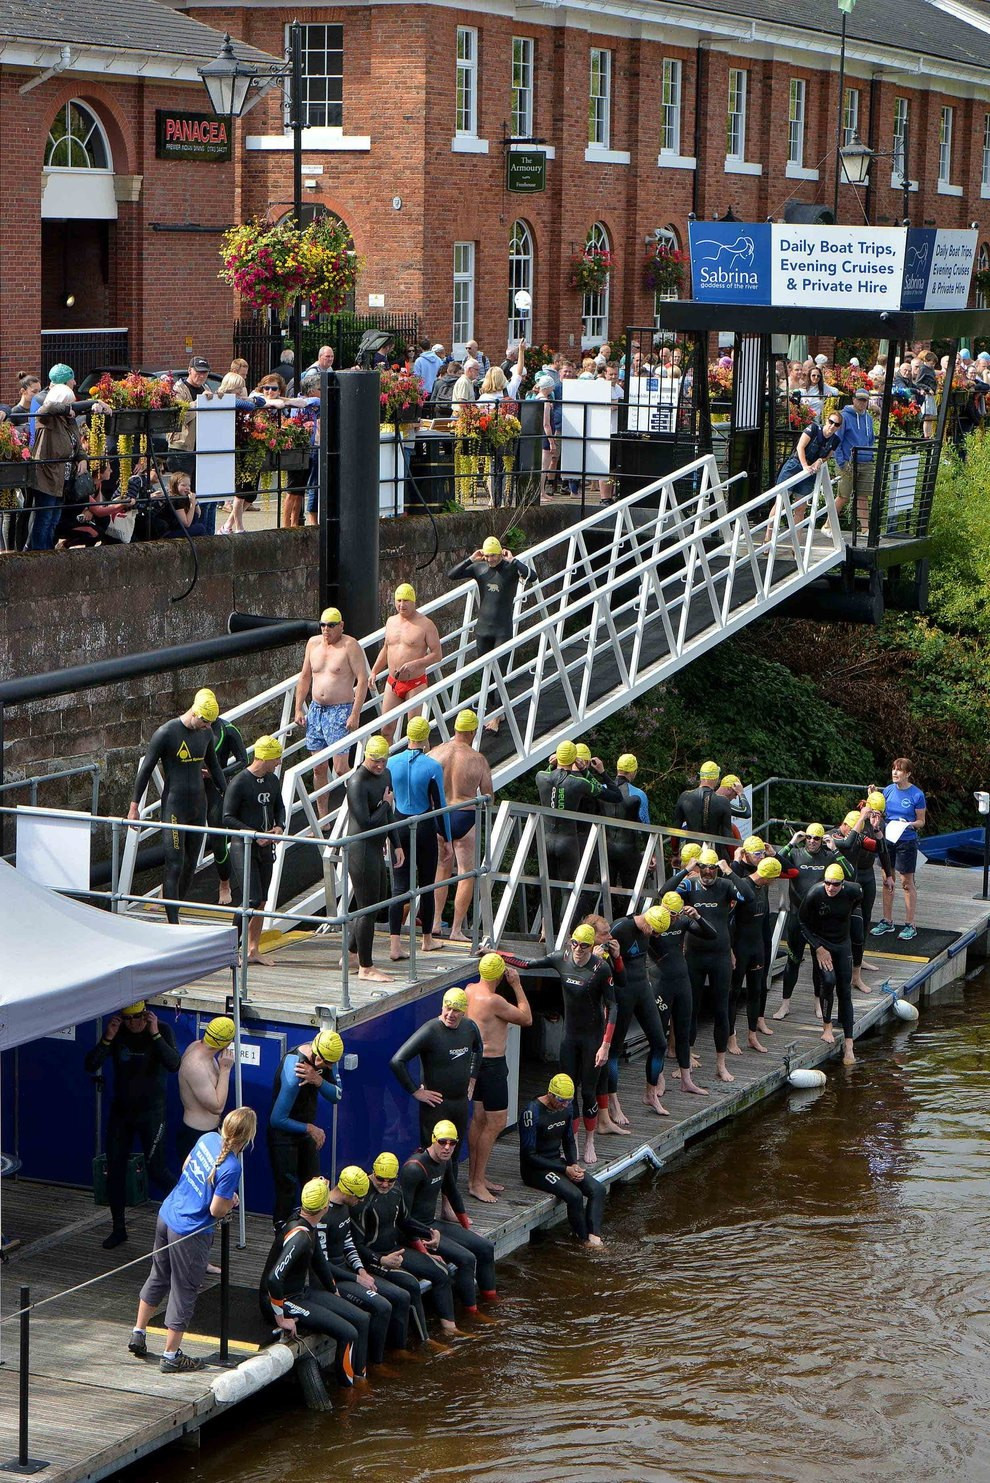 More than 140 swimmers took to the waters of the River Severn